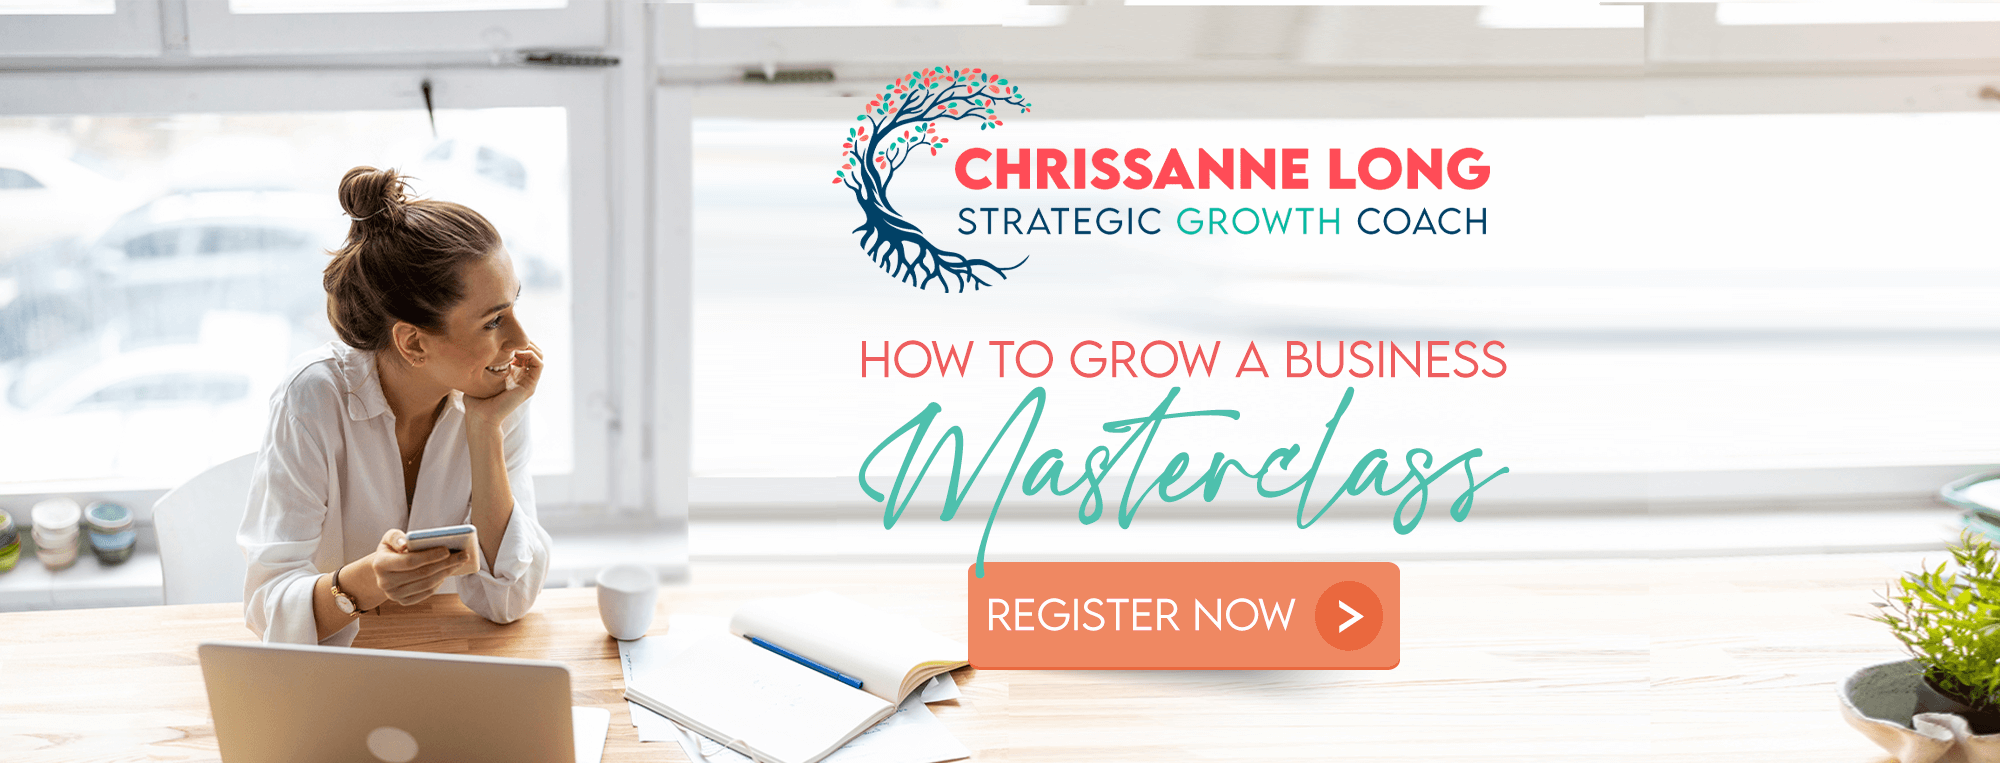 How to grow your business master class - register